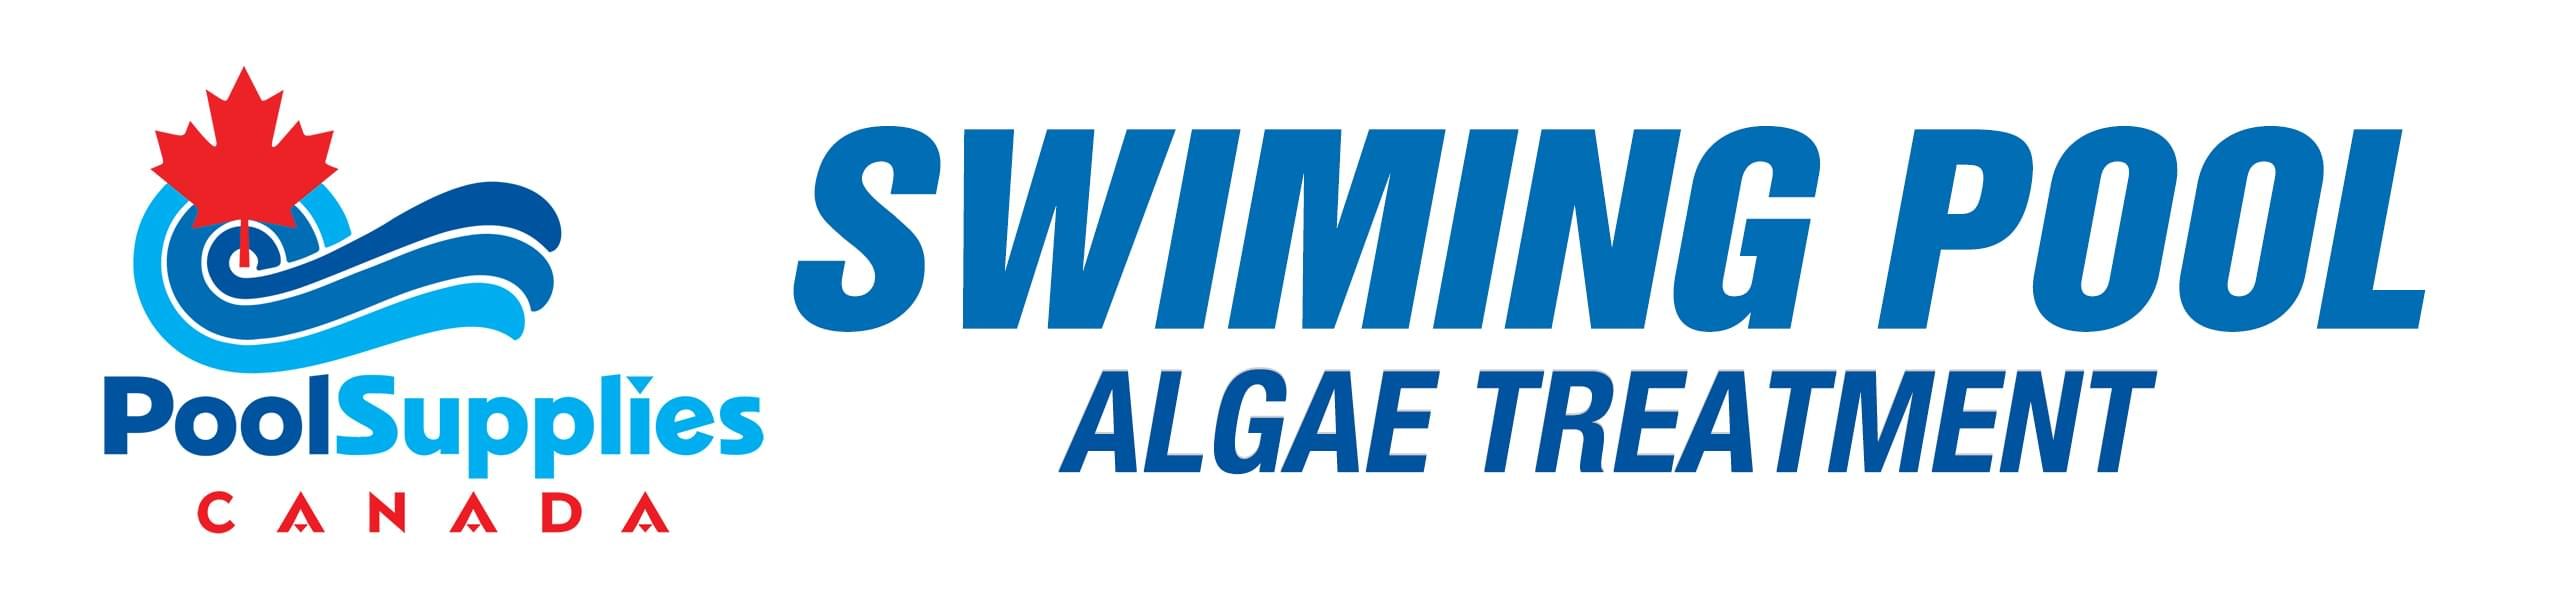 Swimming Pool Algae Treatment